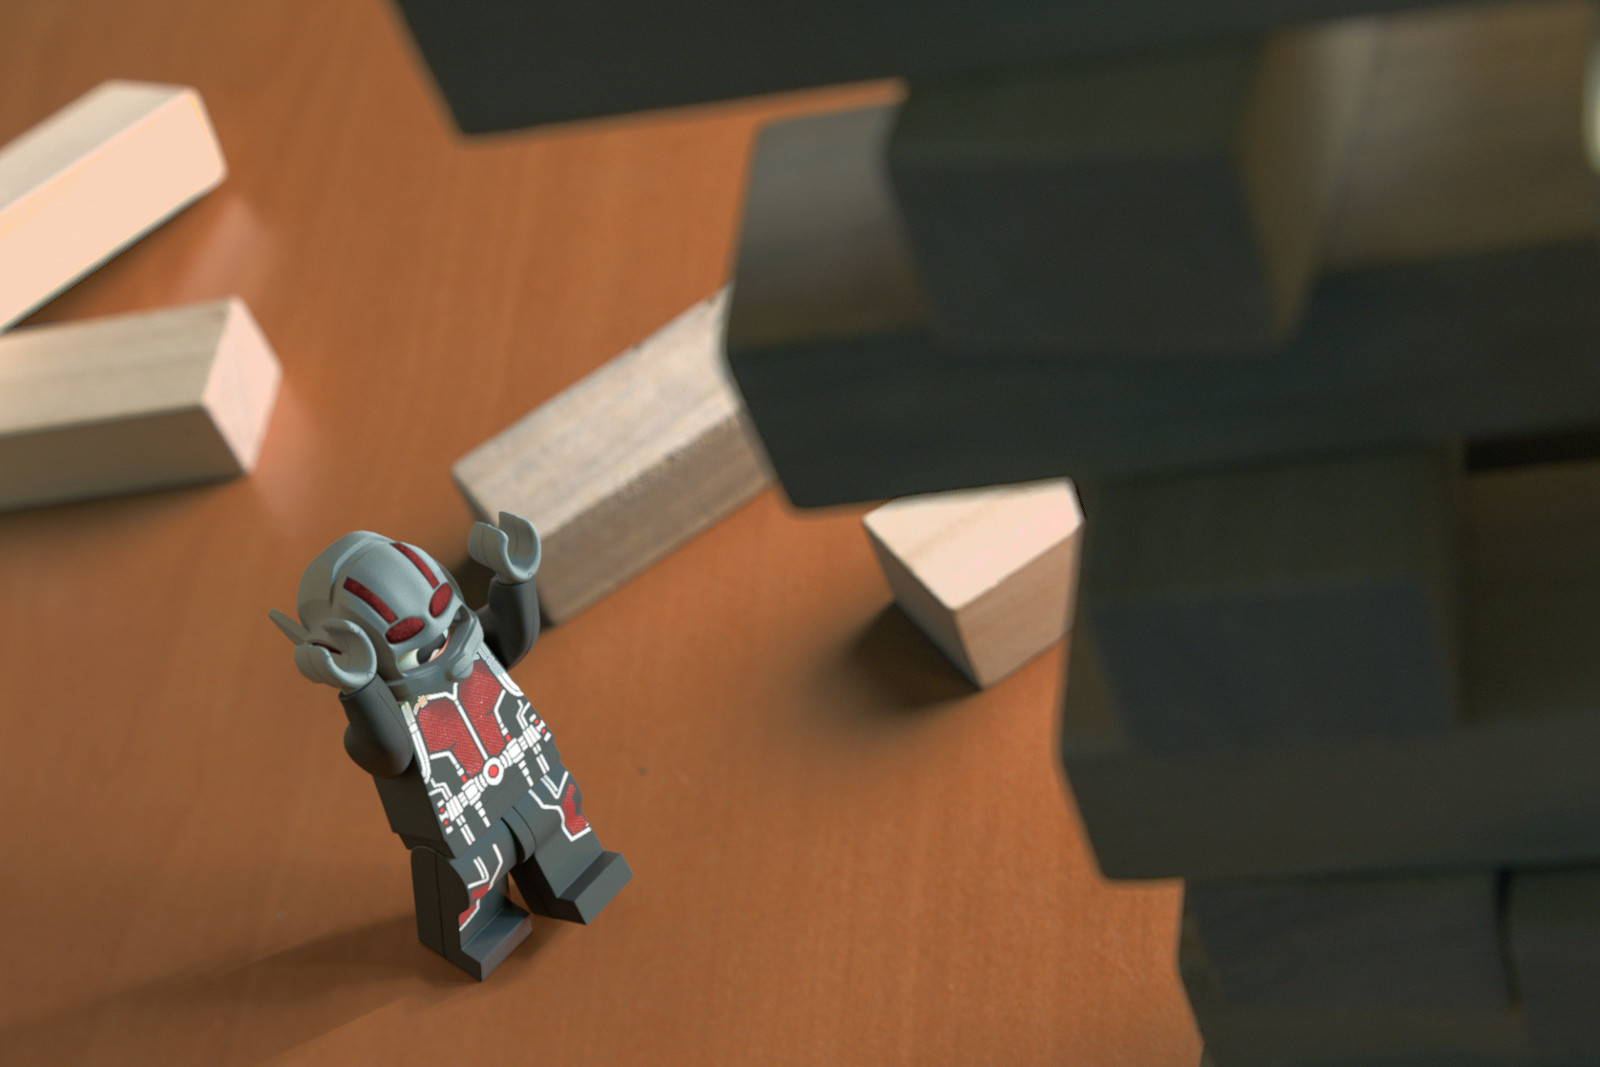 Lego Antman Final Image